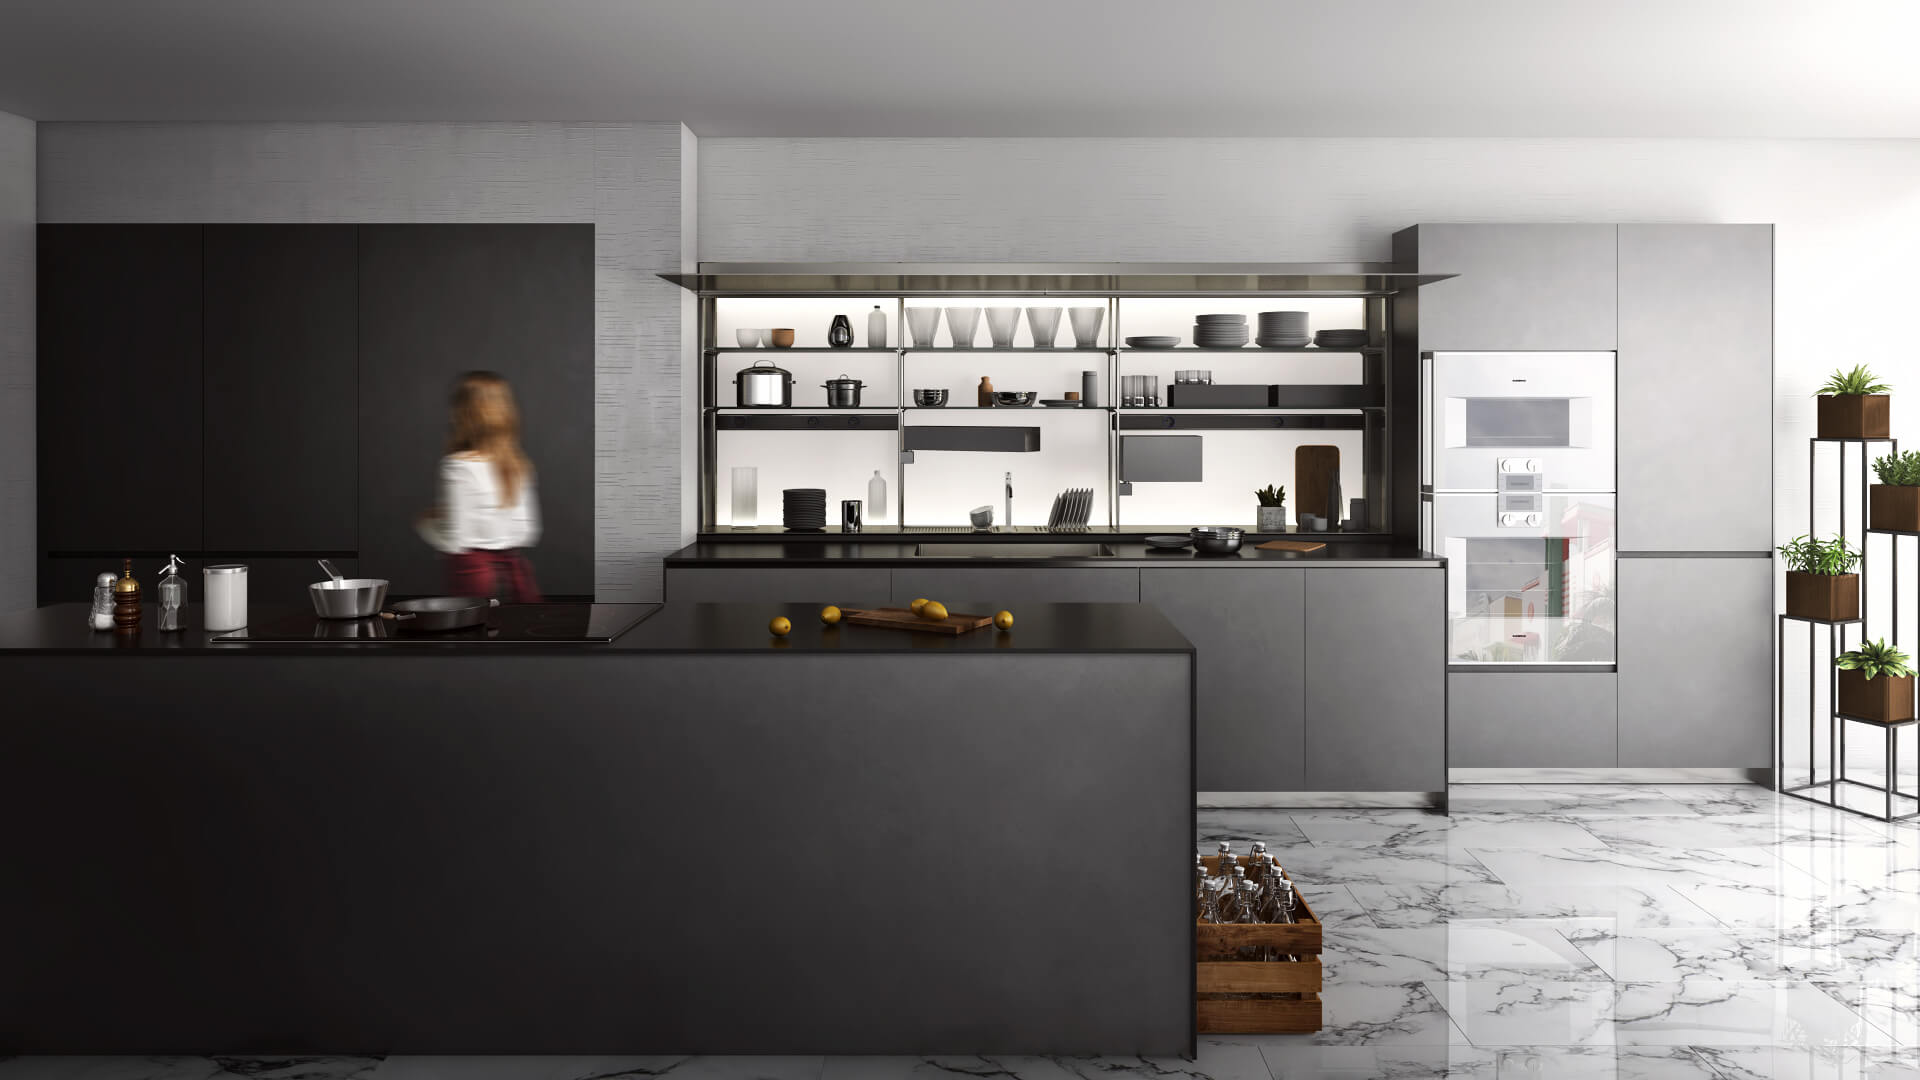 CGI of a Kitchen with Modern Design